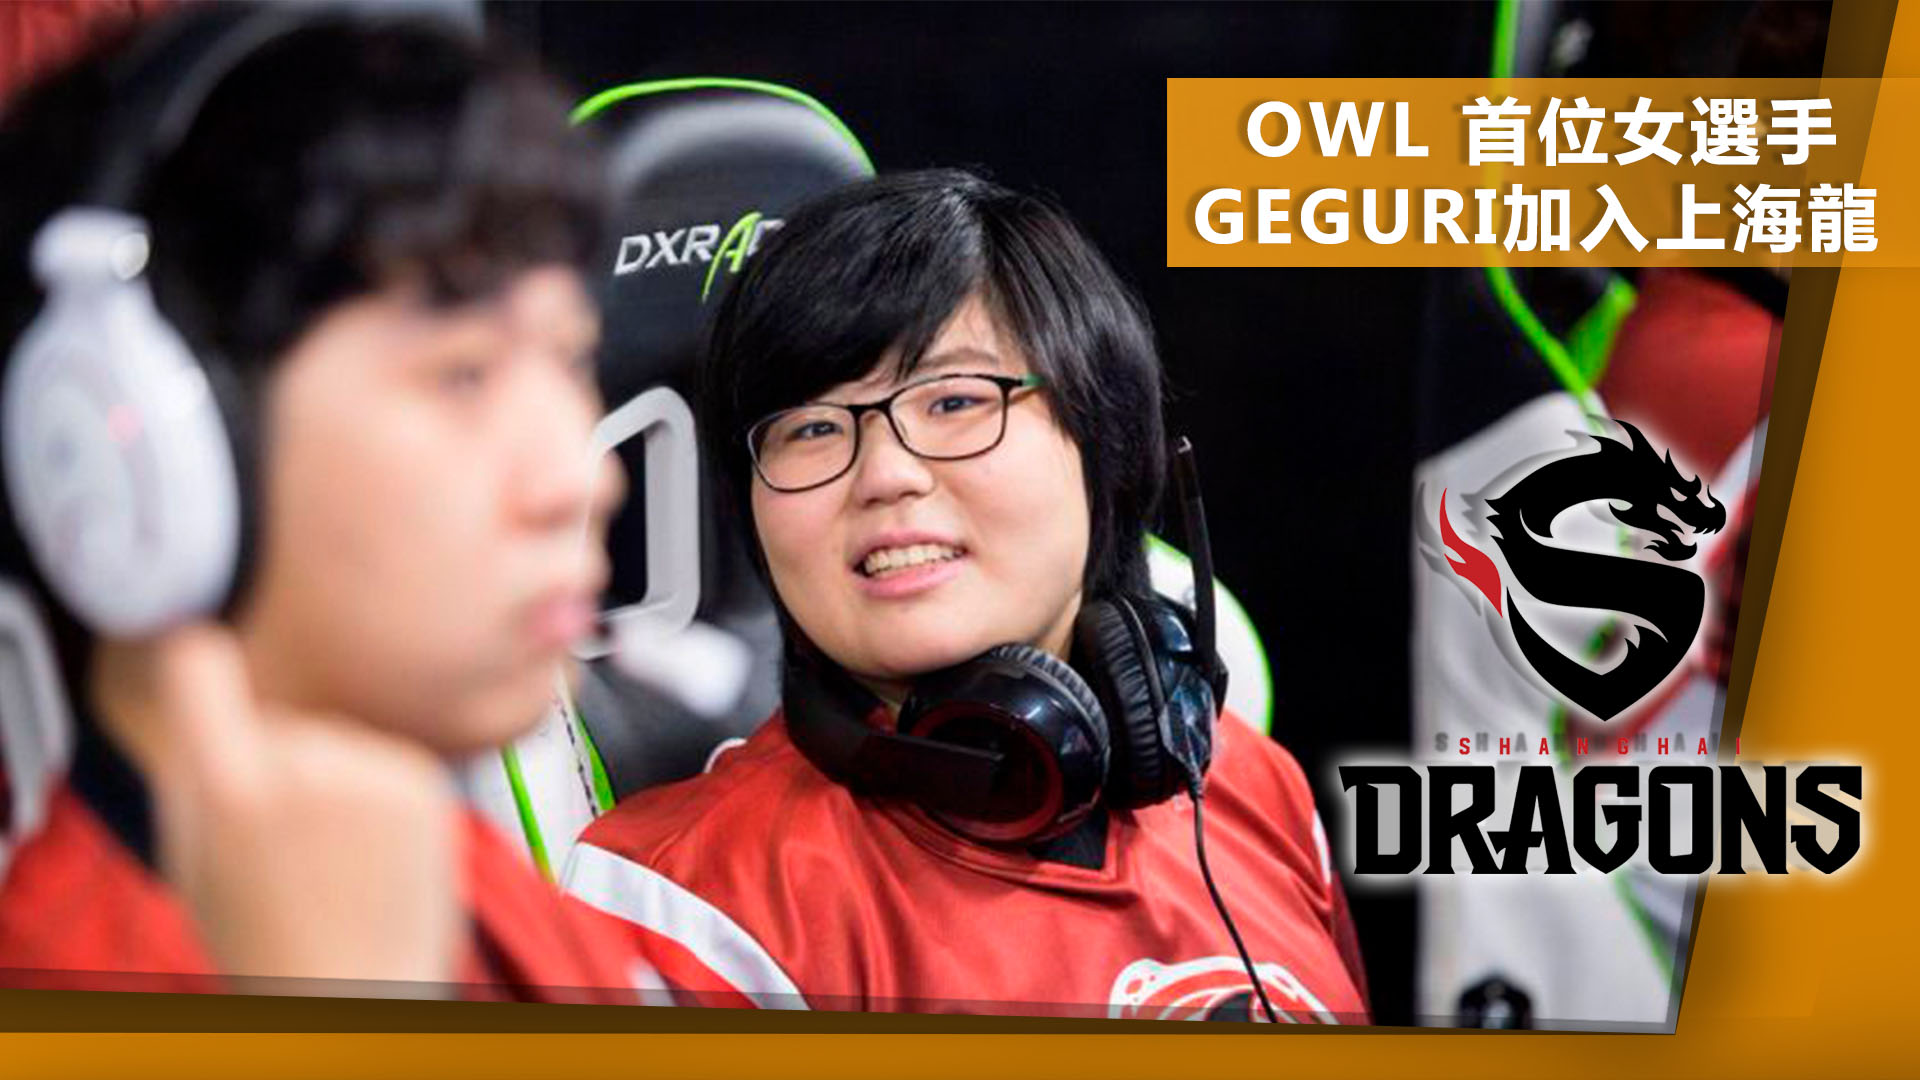 GEGURI 上海龍 SHANGHAI DRAGON